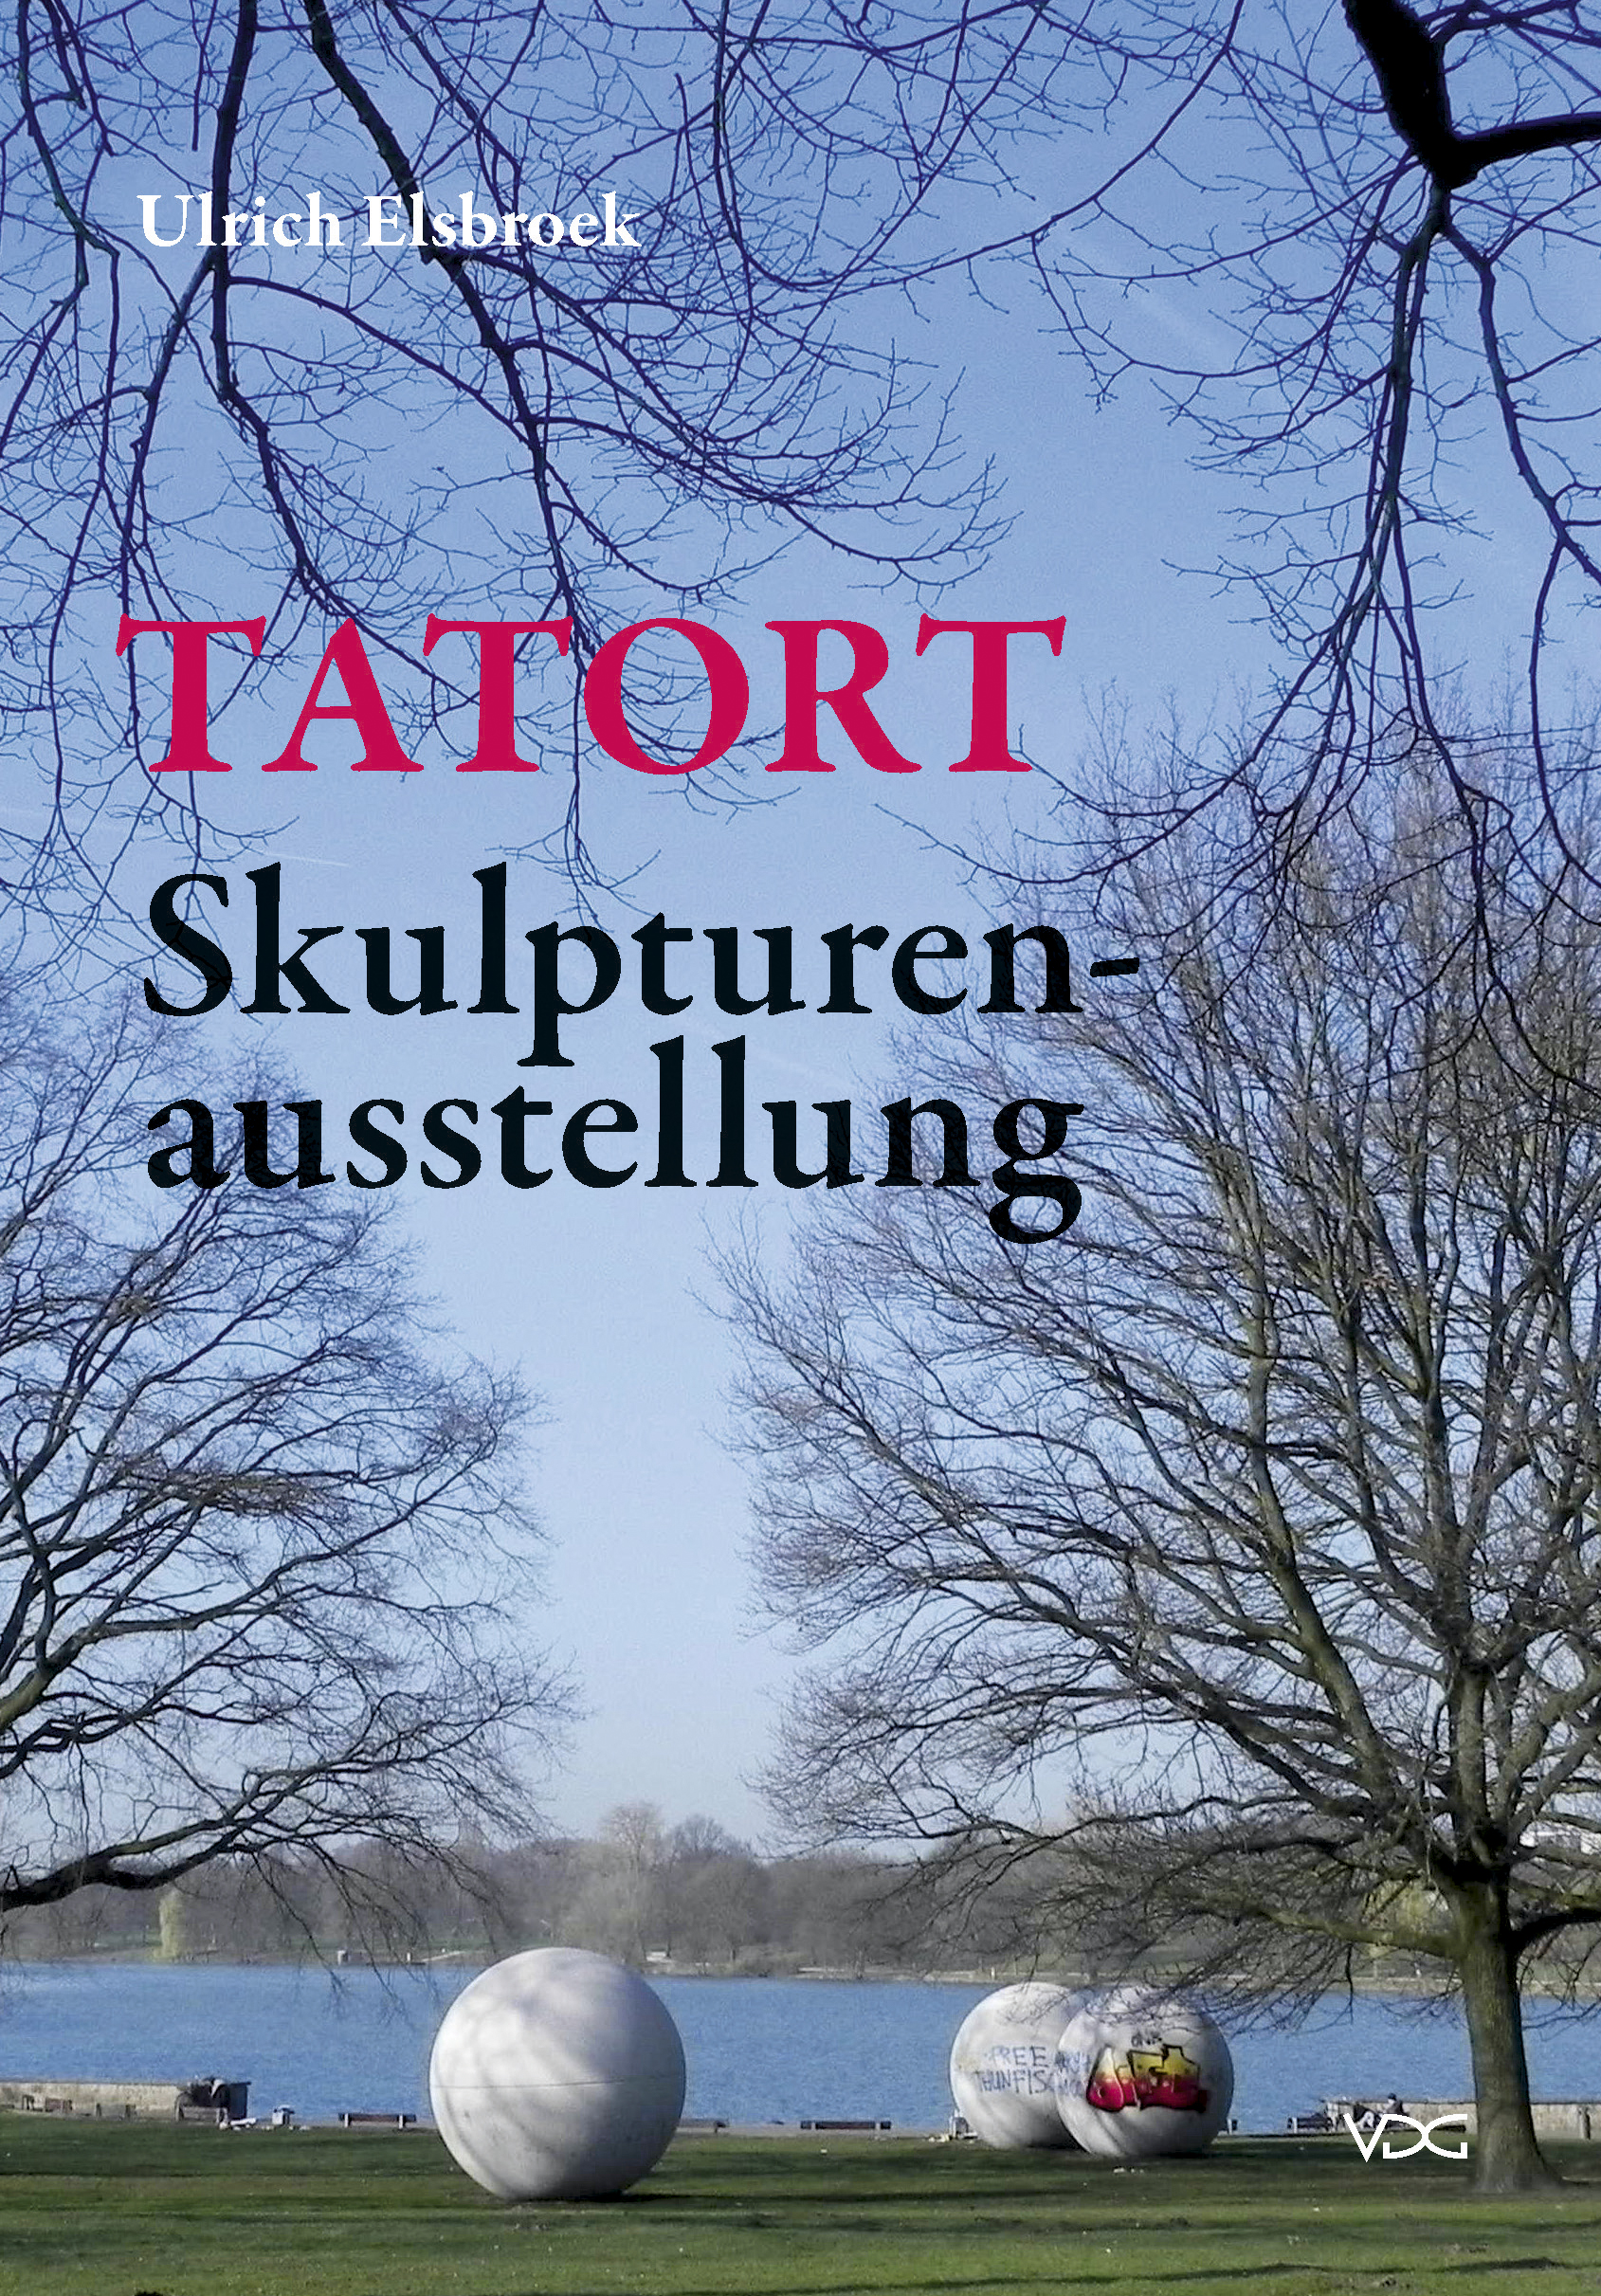 TATORT Skulpturenausstellung © Cover VDG Weimar